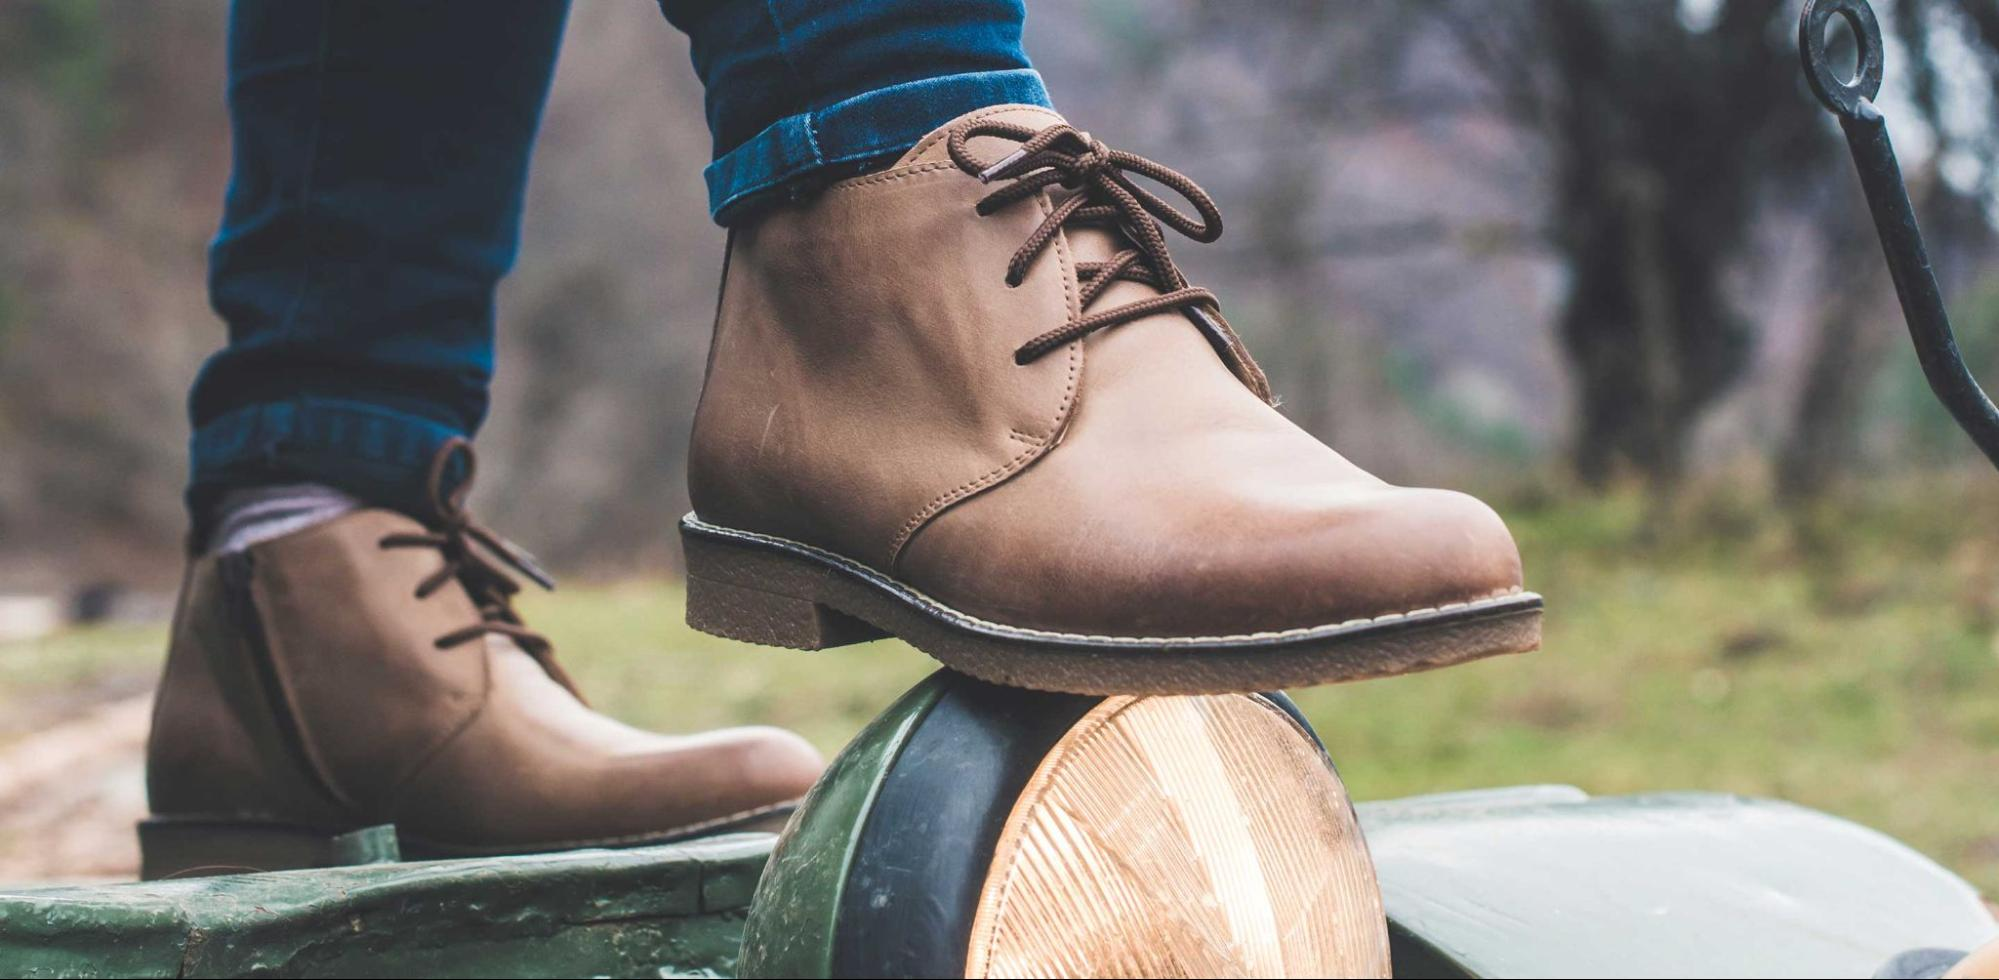 How To Shrink Leather Shoes